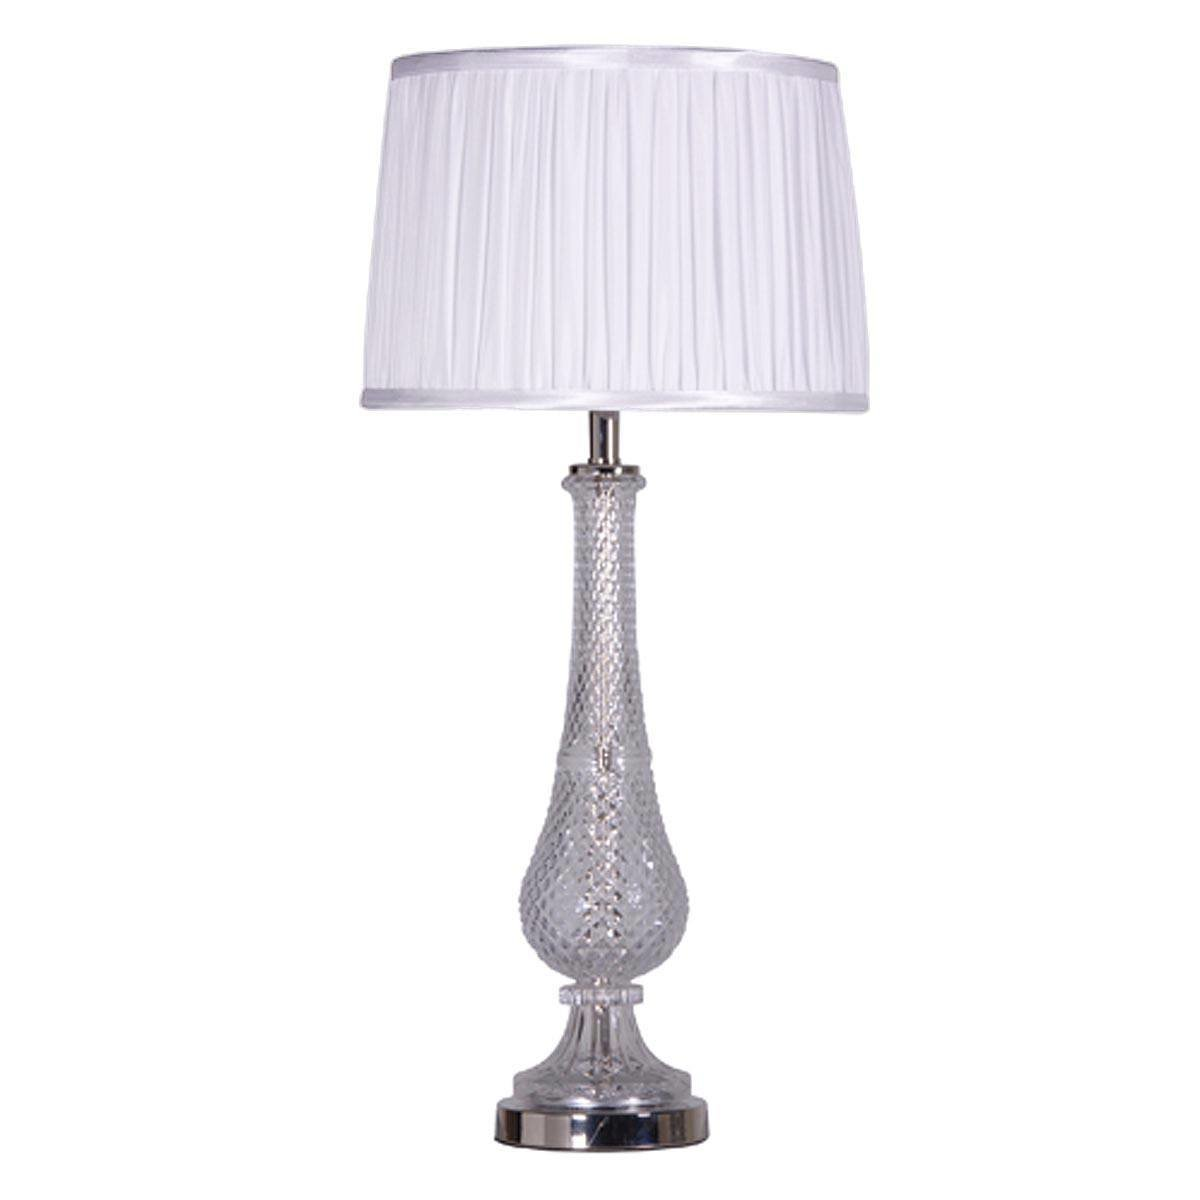 Best Elodie Cut Glass Elegant Table Lamp French Bedroom Company With Pictures